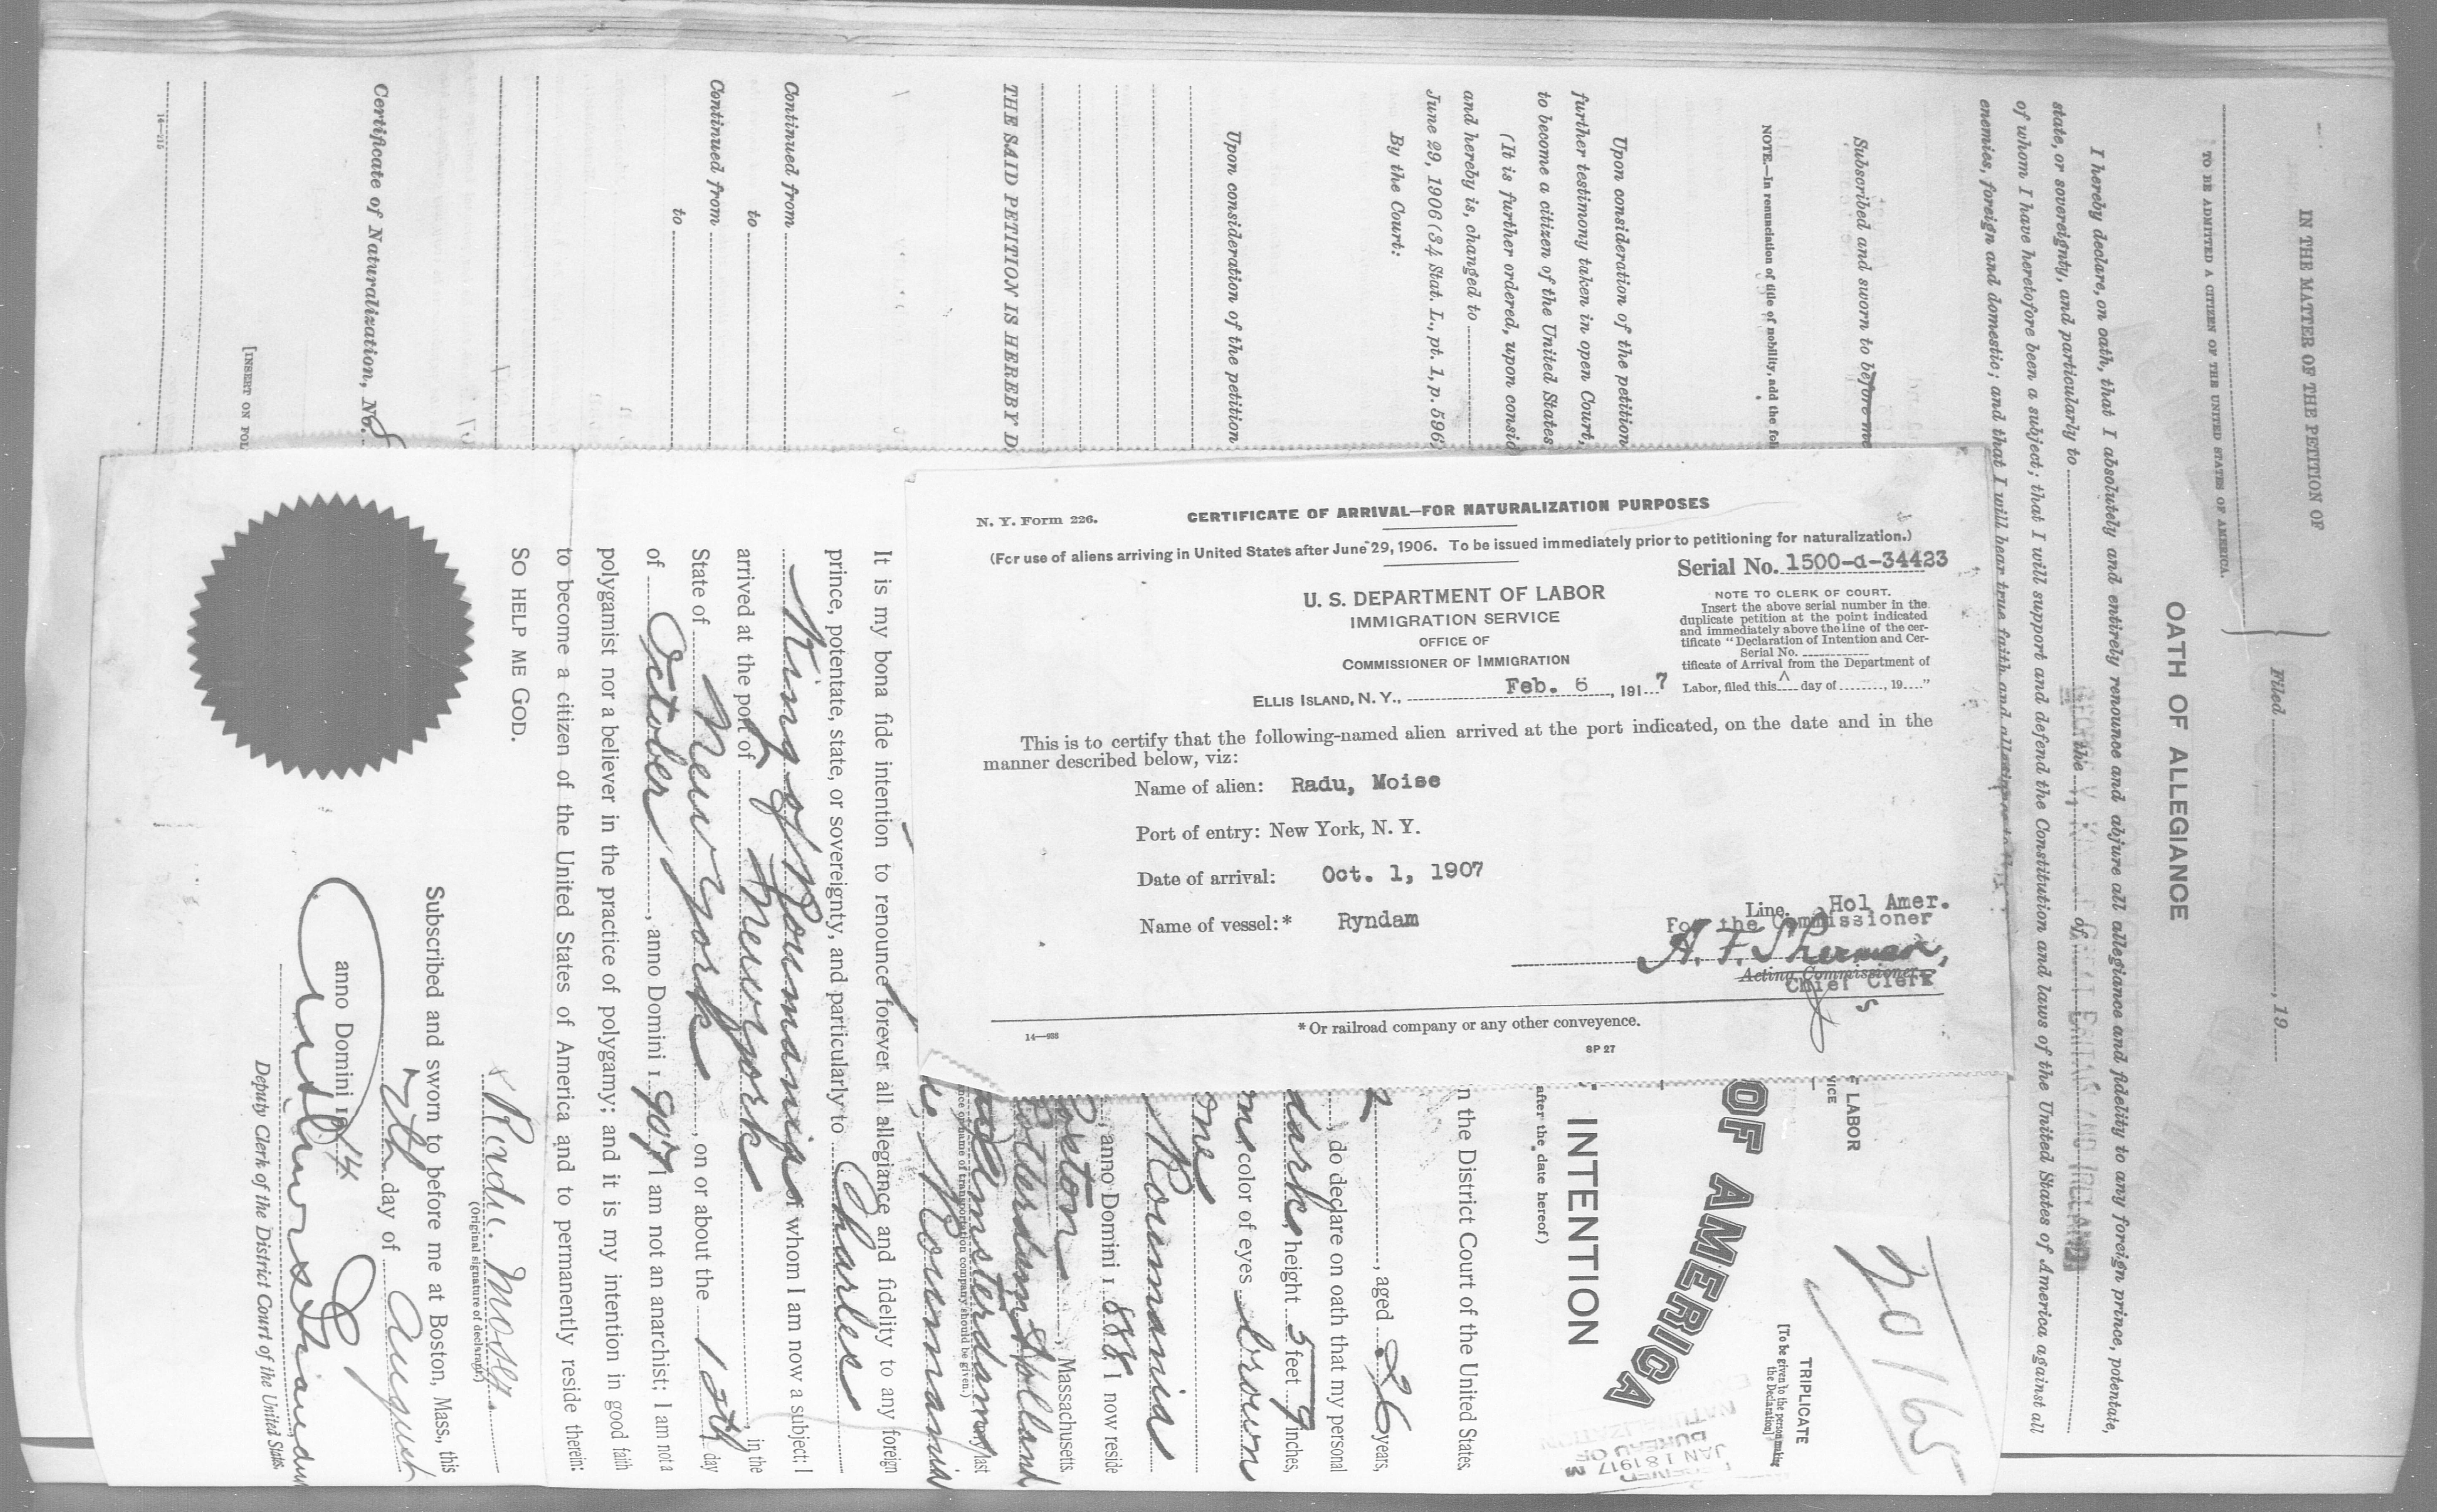 Petition for Naturalization of Radu, Moise